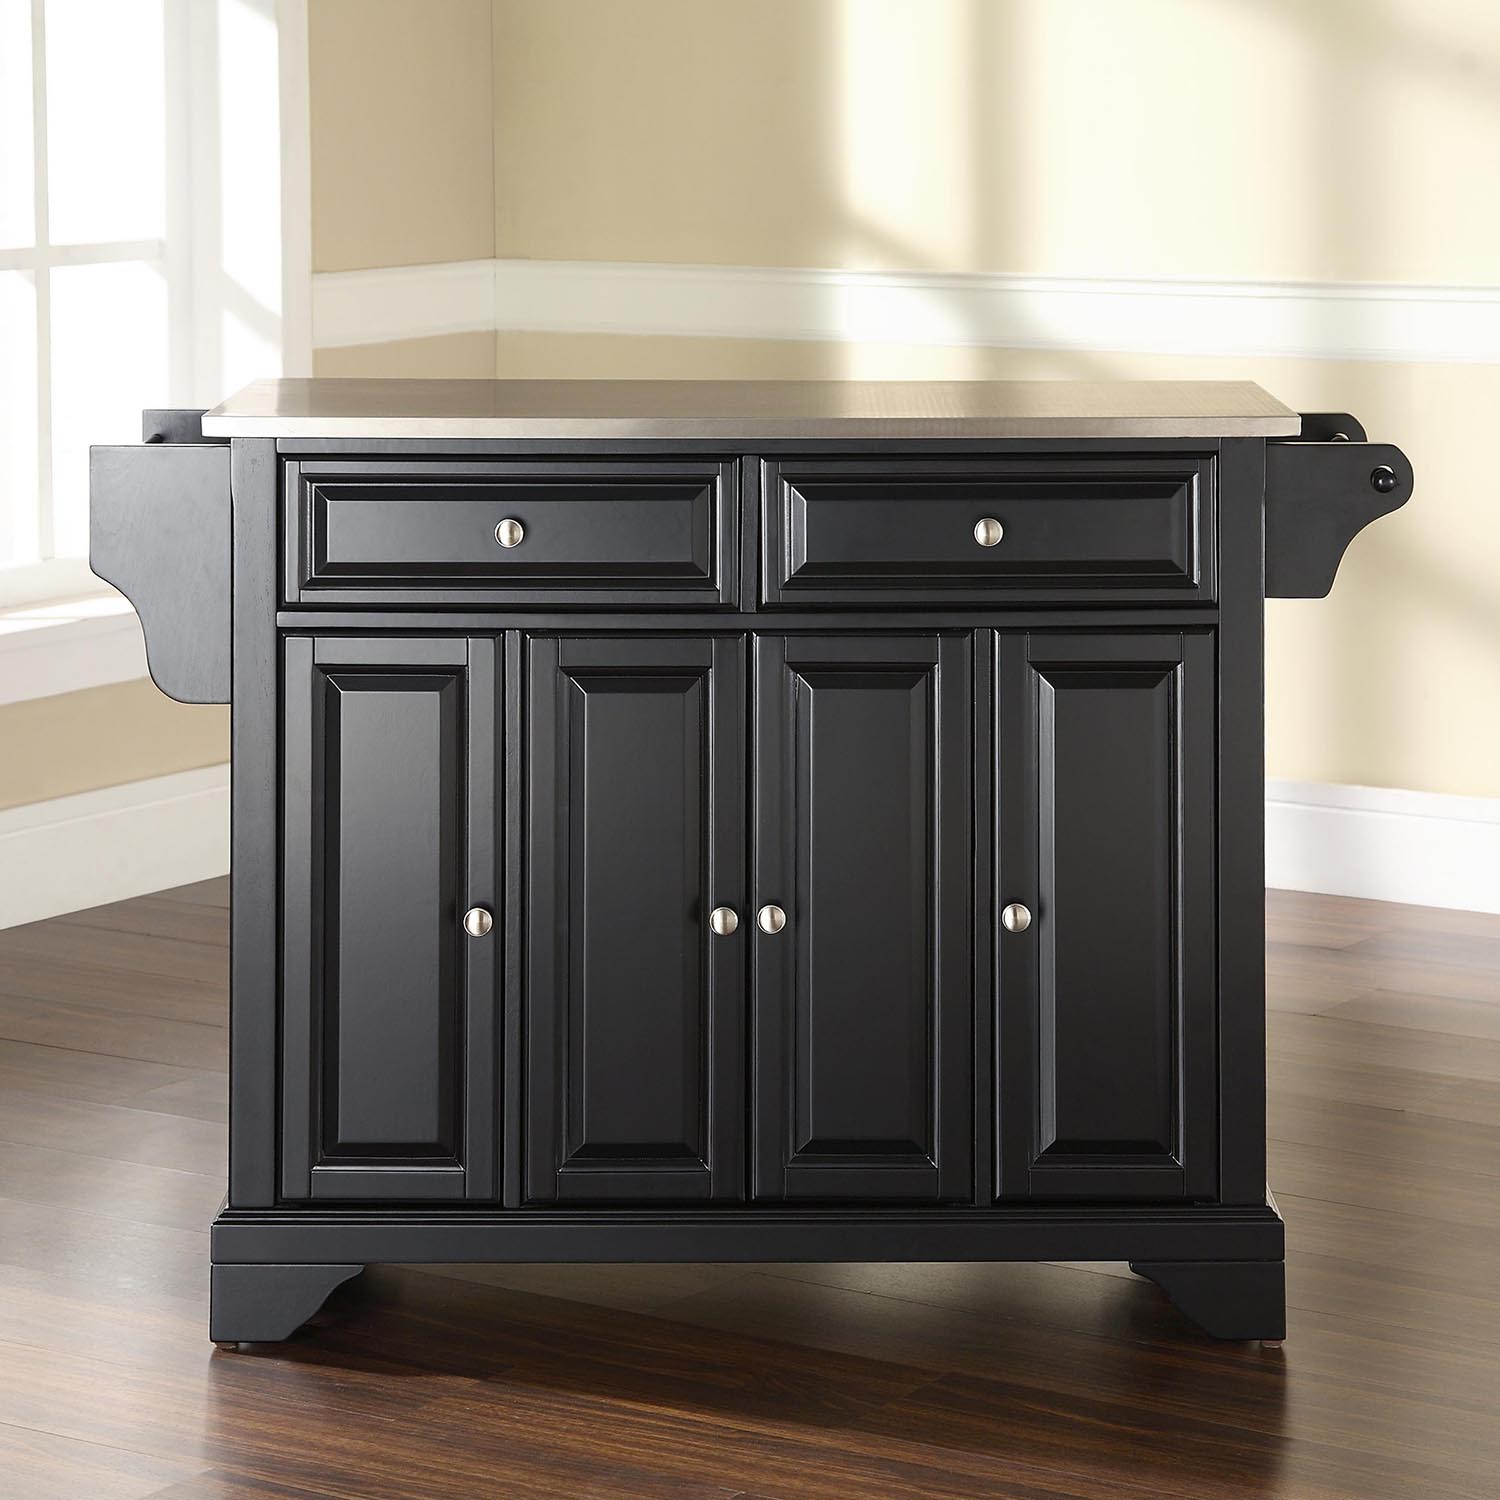 Kitchen Art Lafayette: LaFayette Stainless Steel Top Kitchen Island - Black